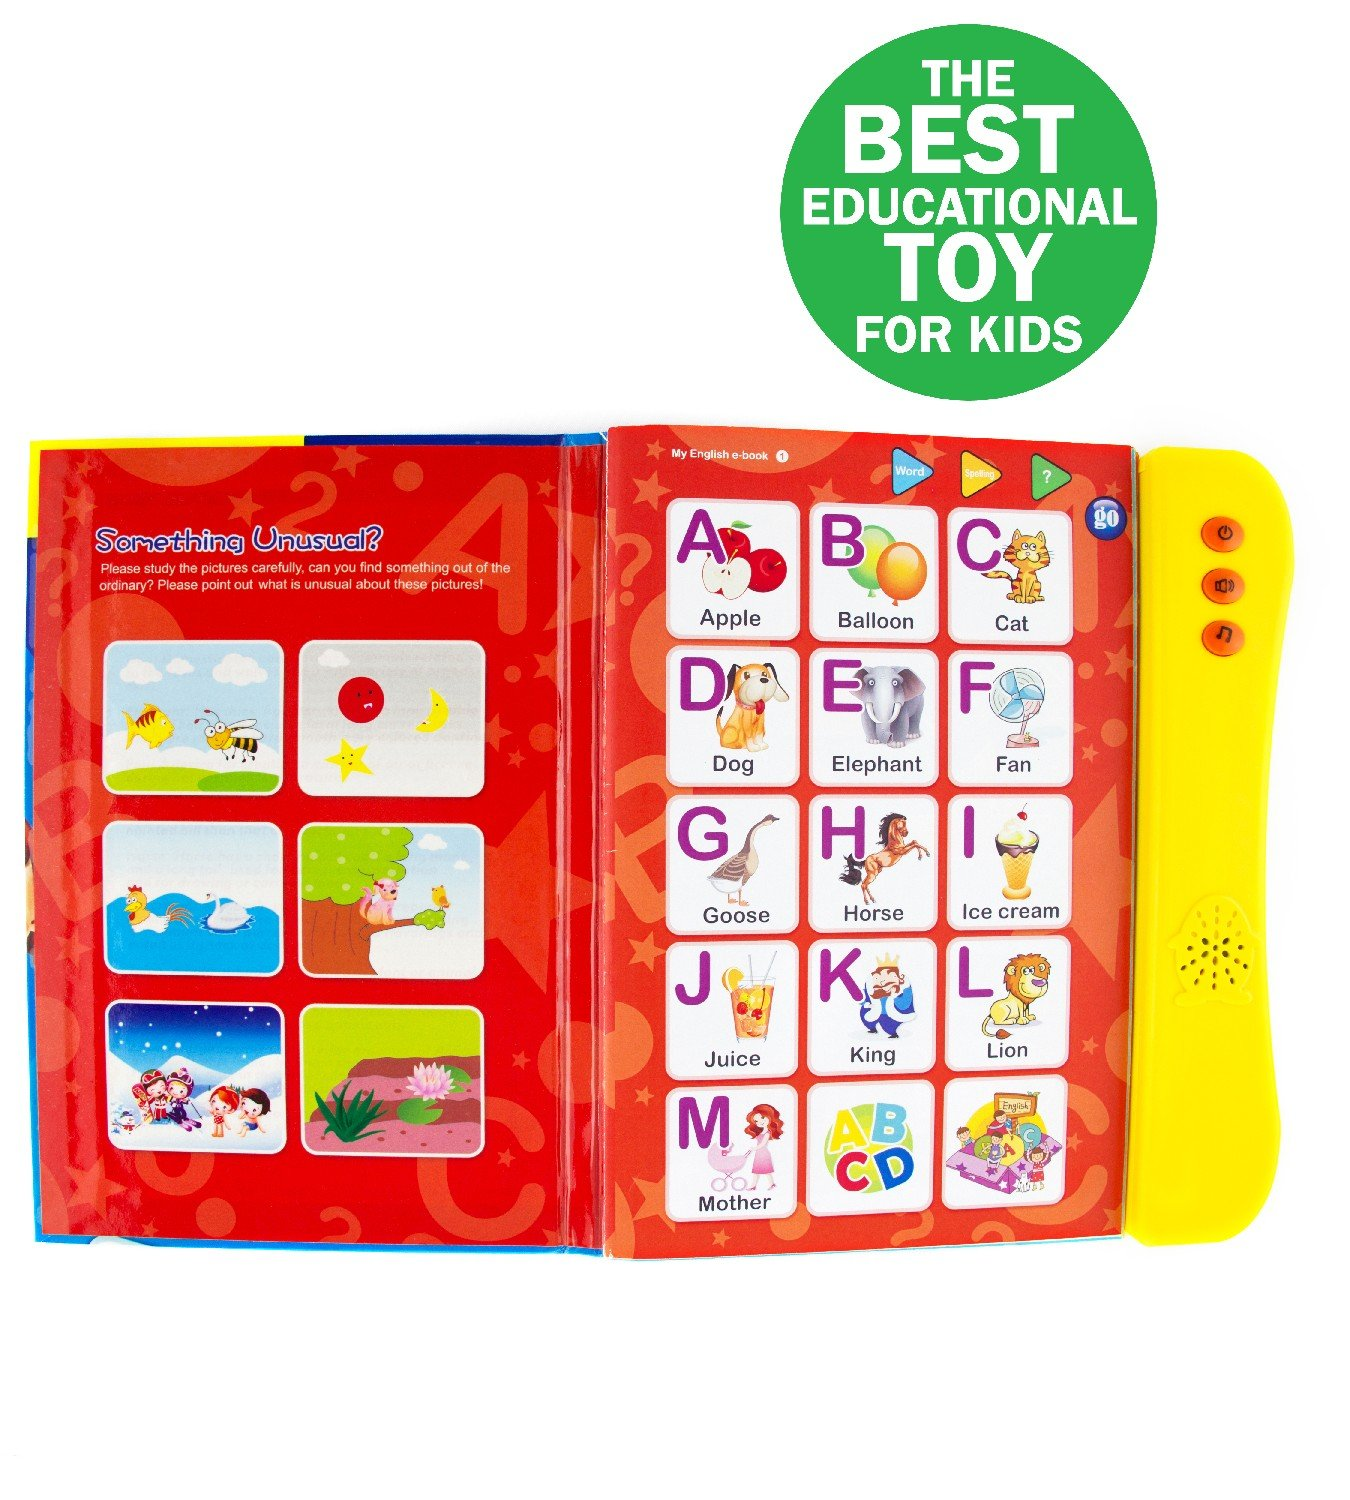 ABC Sound Book for Children / English Letters & Words Learning Book, Fun Educational Toy. Learning Activities for Letters, Words, Numbers, Shapes, Colors and Animals for Toddlers by Boxiki kids (Image #6)